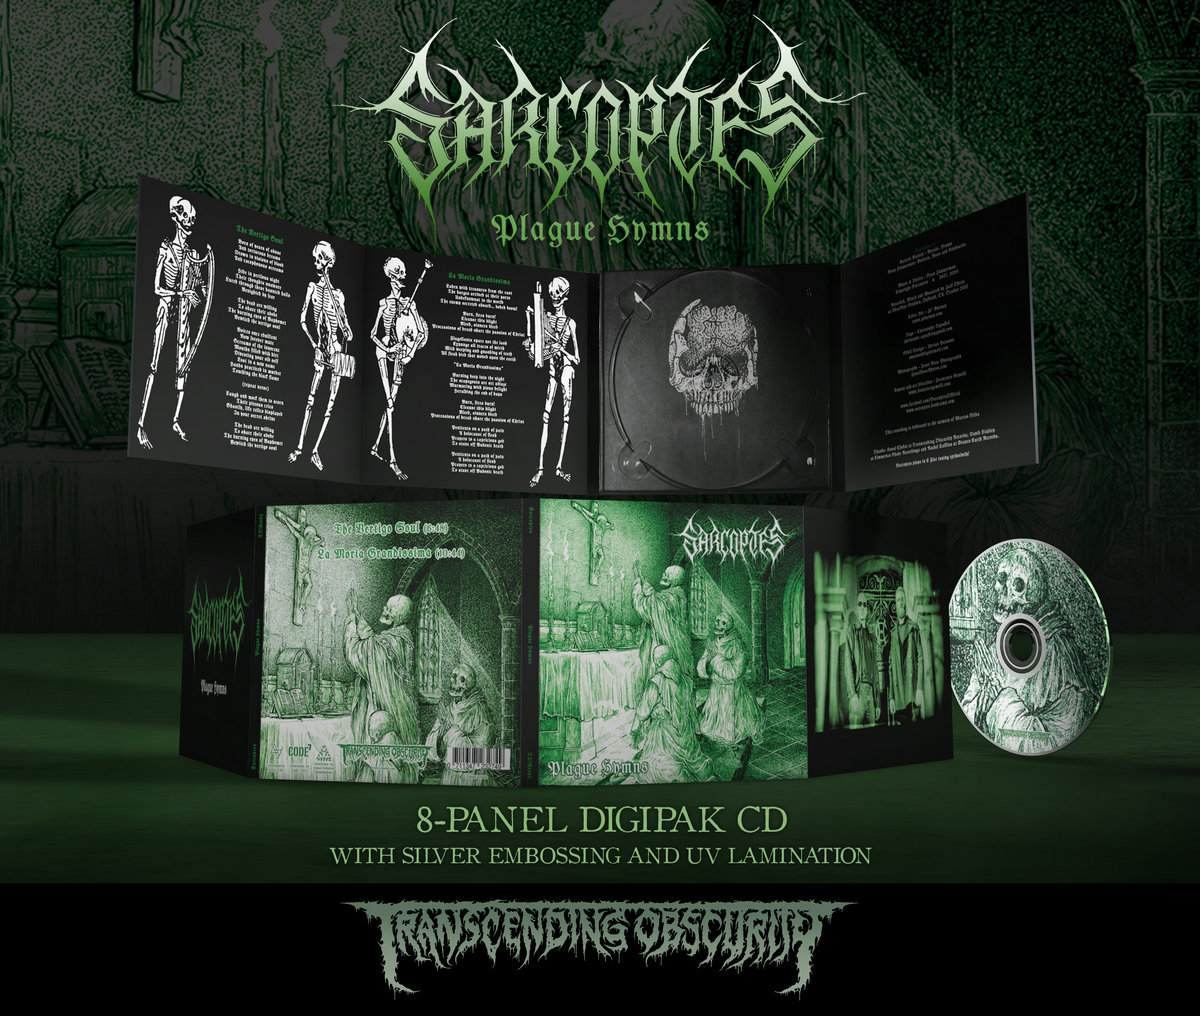 SARCOPTES -  Plague Hymns 8-Panel Digipak CD with Metallic Effect and UV Lamination